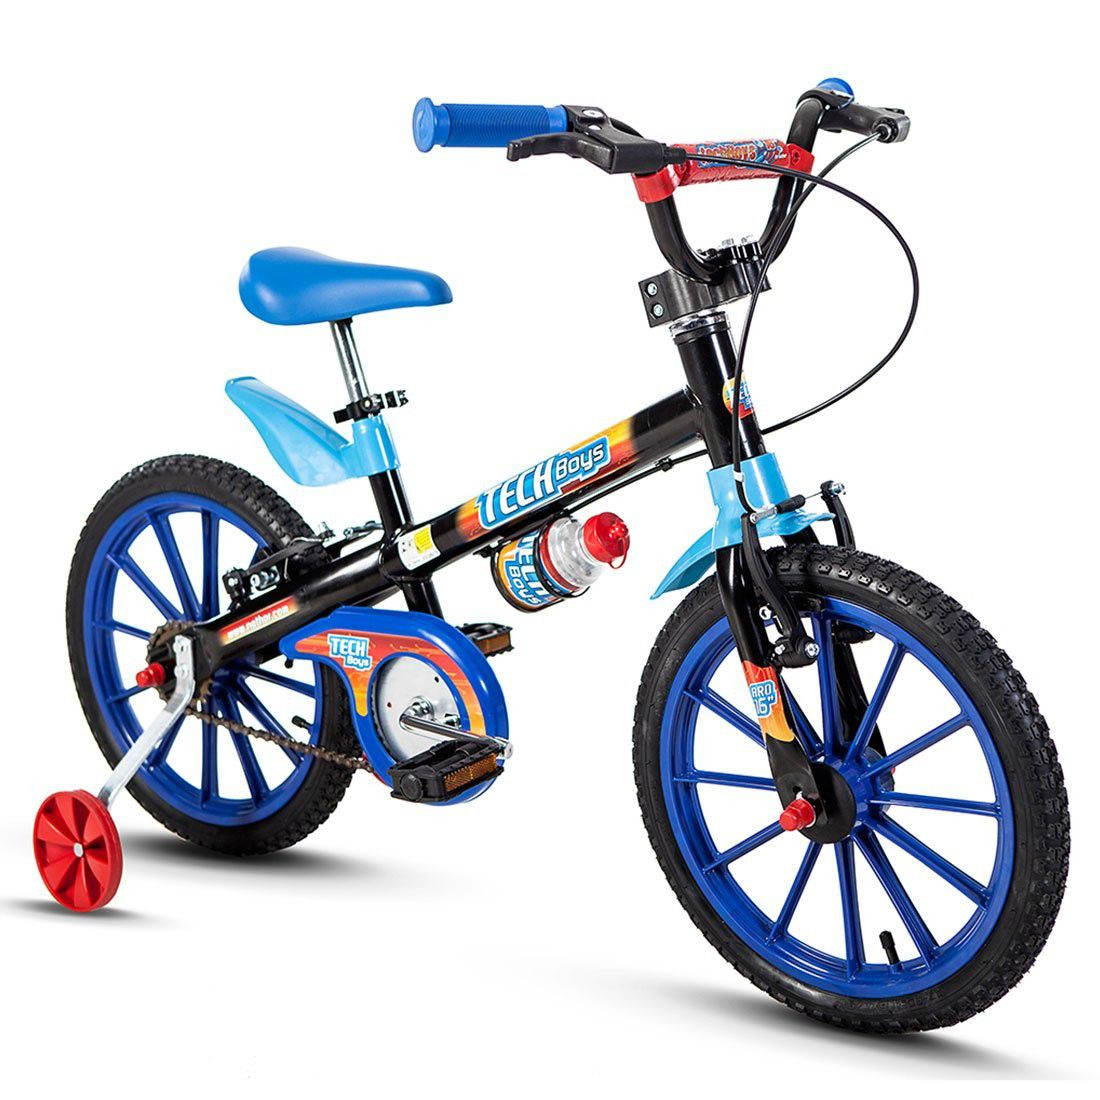 Bicicleta Infantil aro 16 modelo Tech Boys Nathor Bike